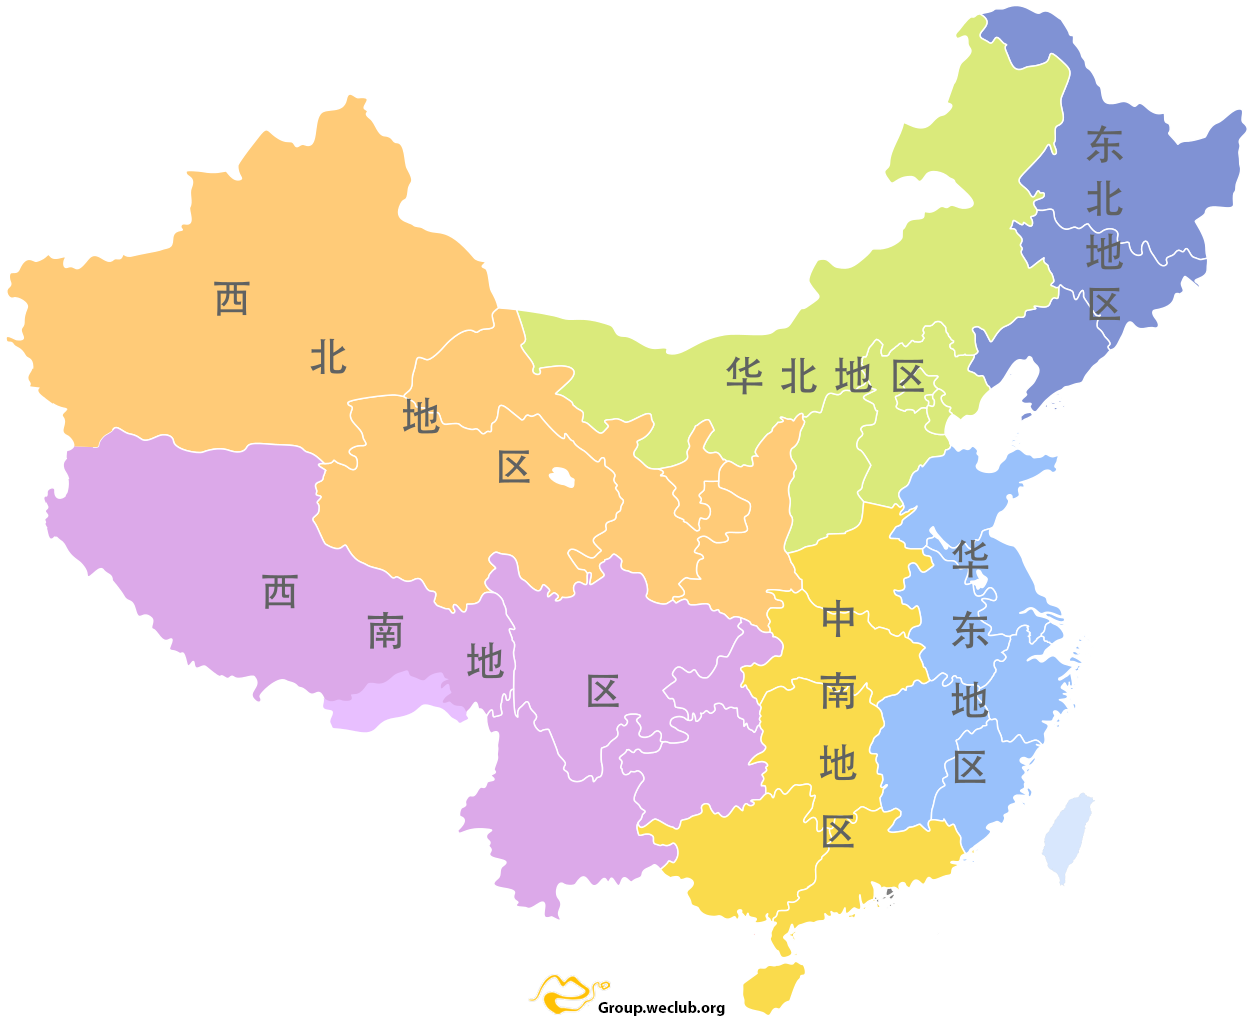 Regions_of_China_Names_Chinese_Simp.svg.png